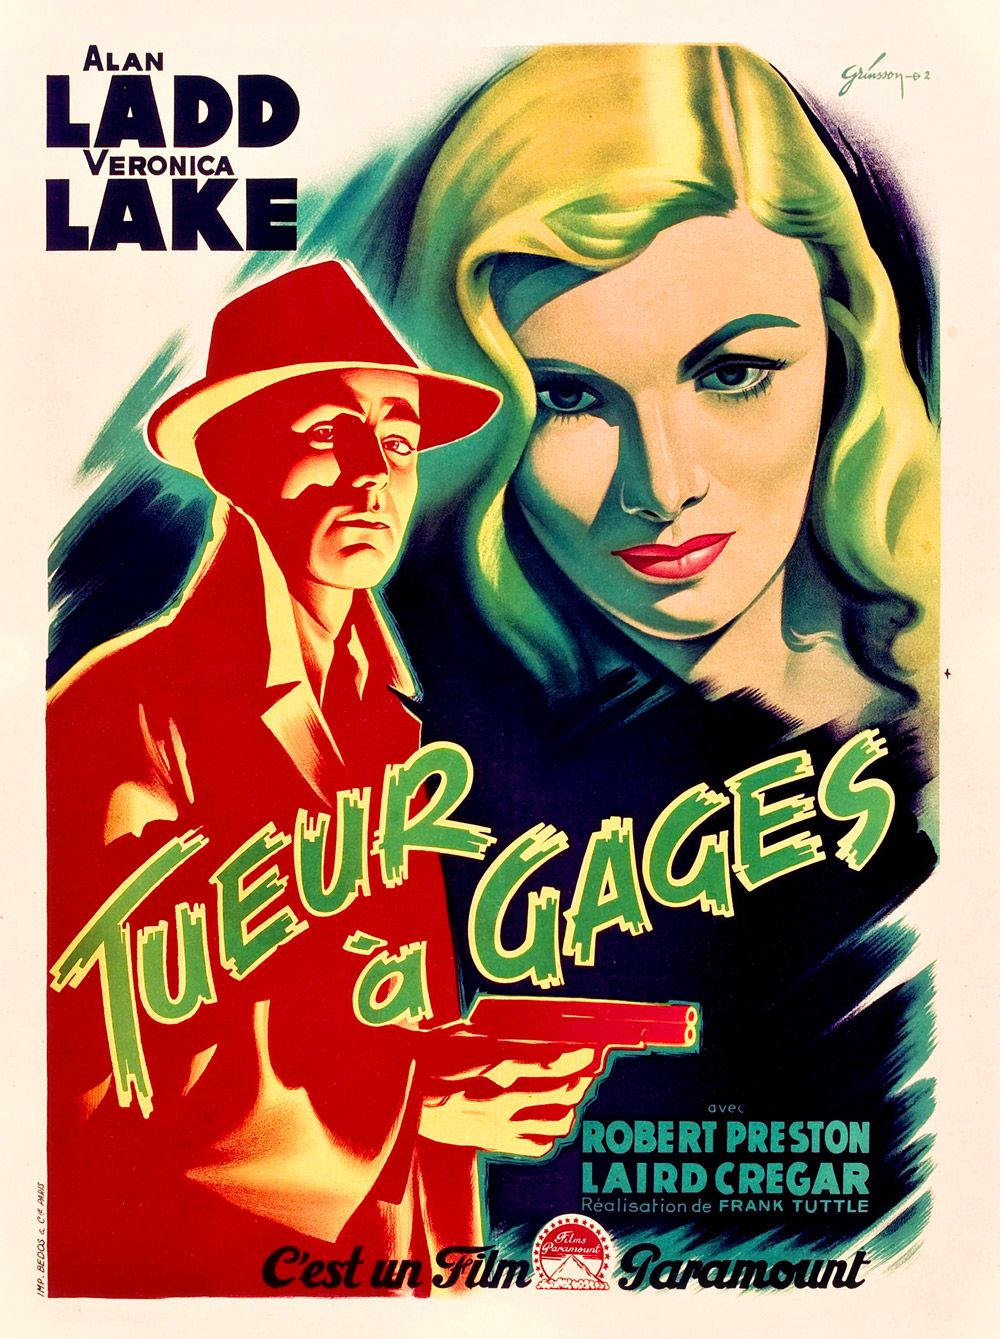 Movie posters from the 1940s